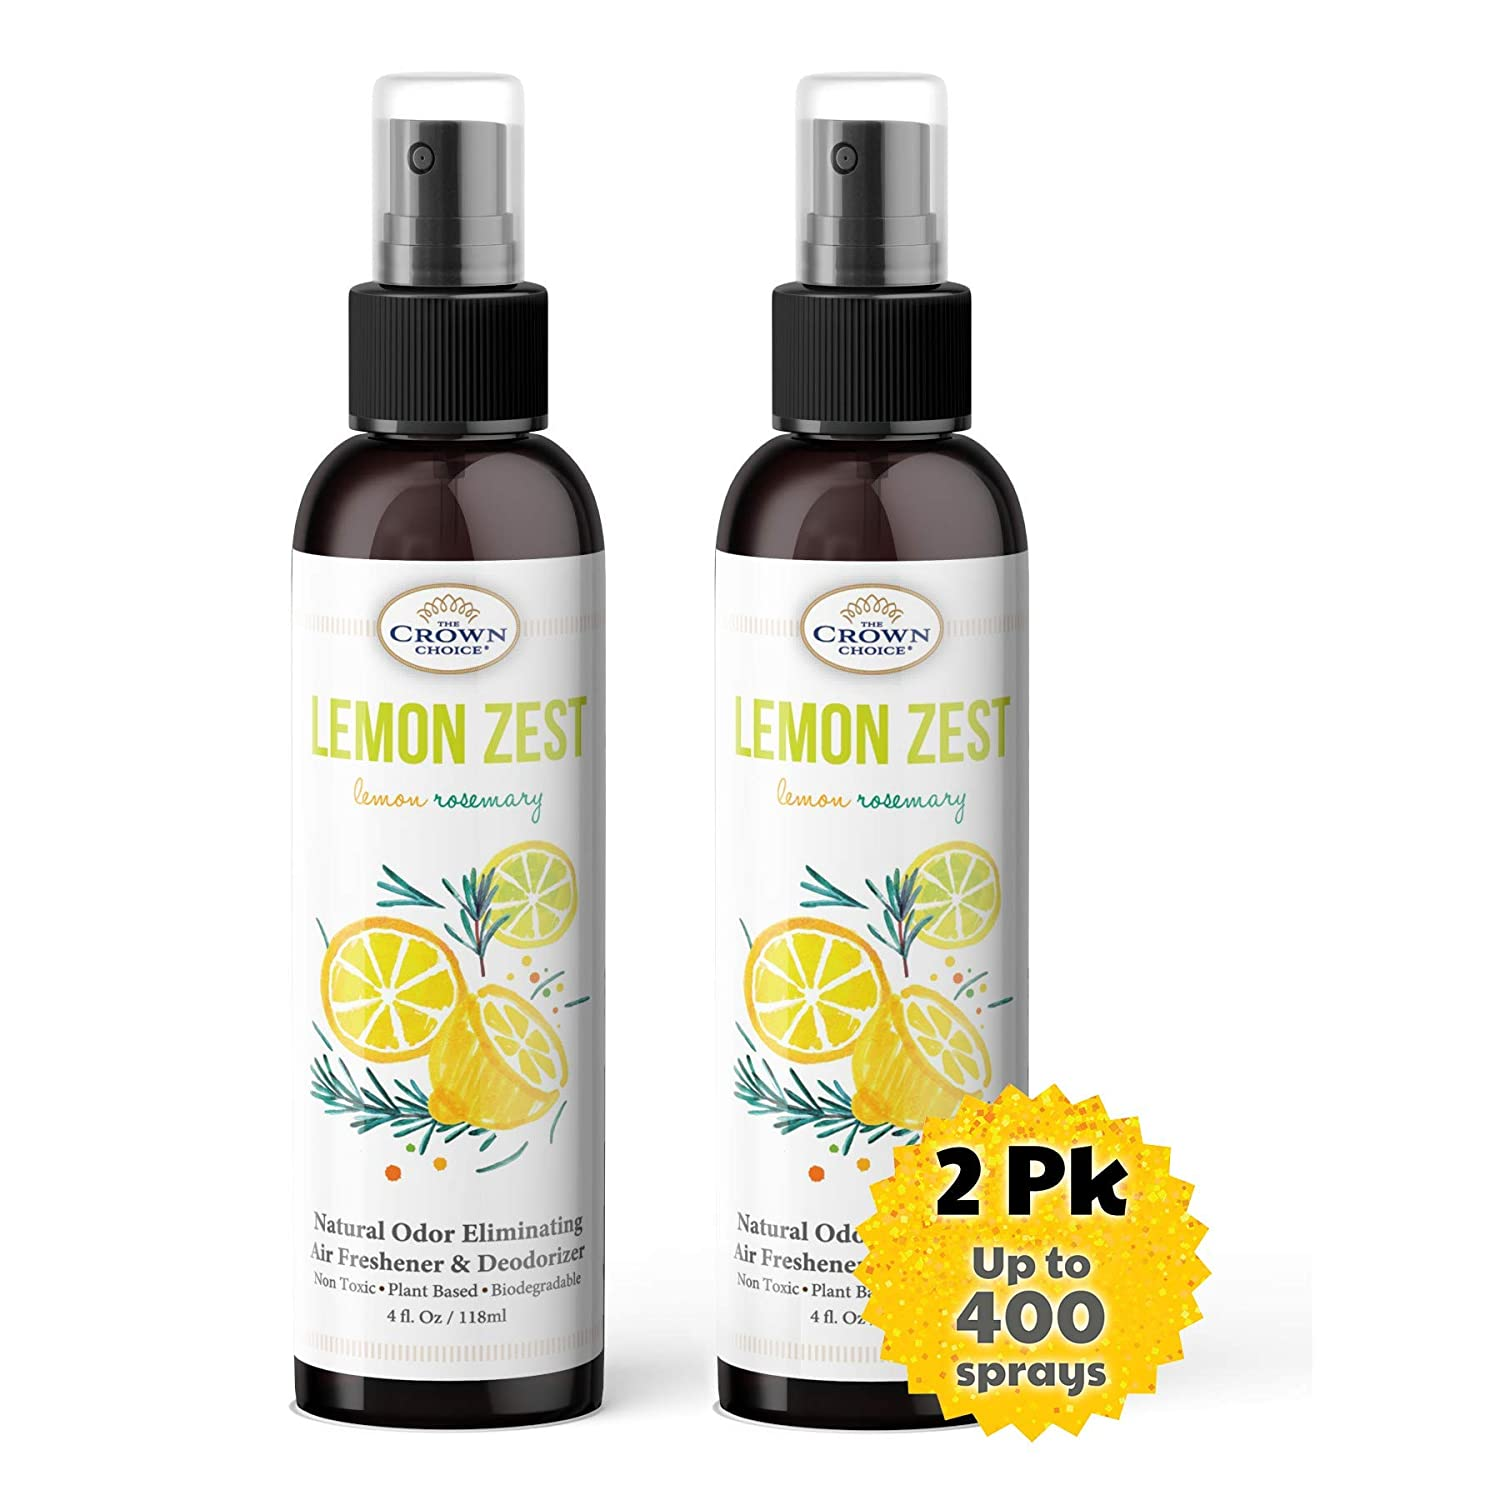 Natural Room Spray Mist Eliminates Odors (Lemon Zest 2PK) | Alcohol Free Soothing Aromatherapy Mist | Natural Room and Body Mist, Pillow and Linen Mist, Essential Oil Spray